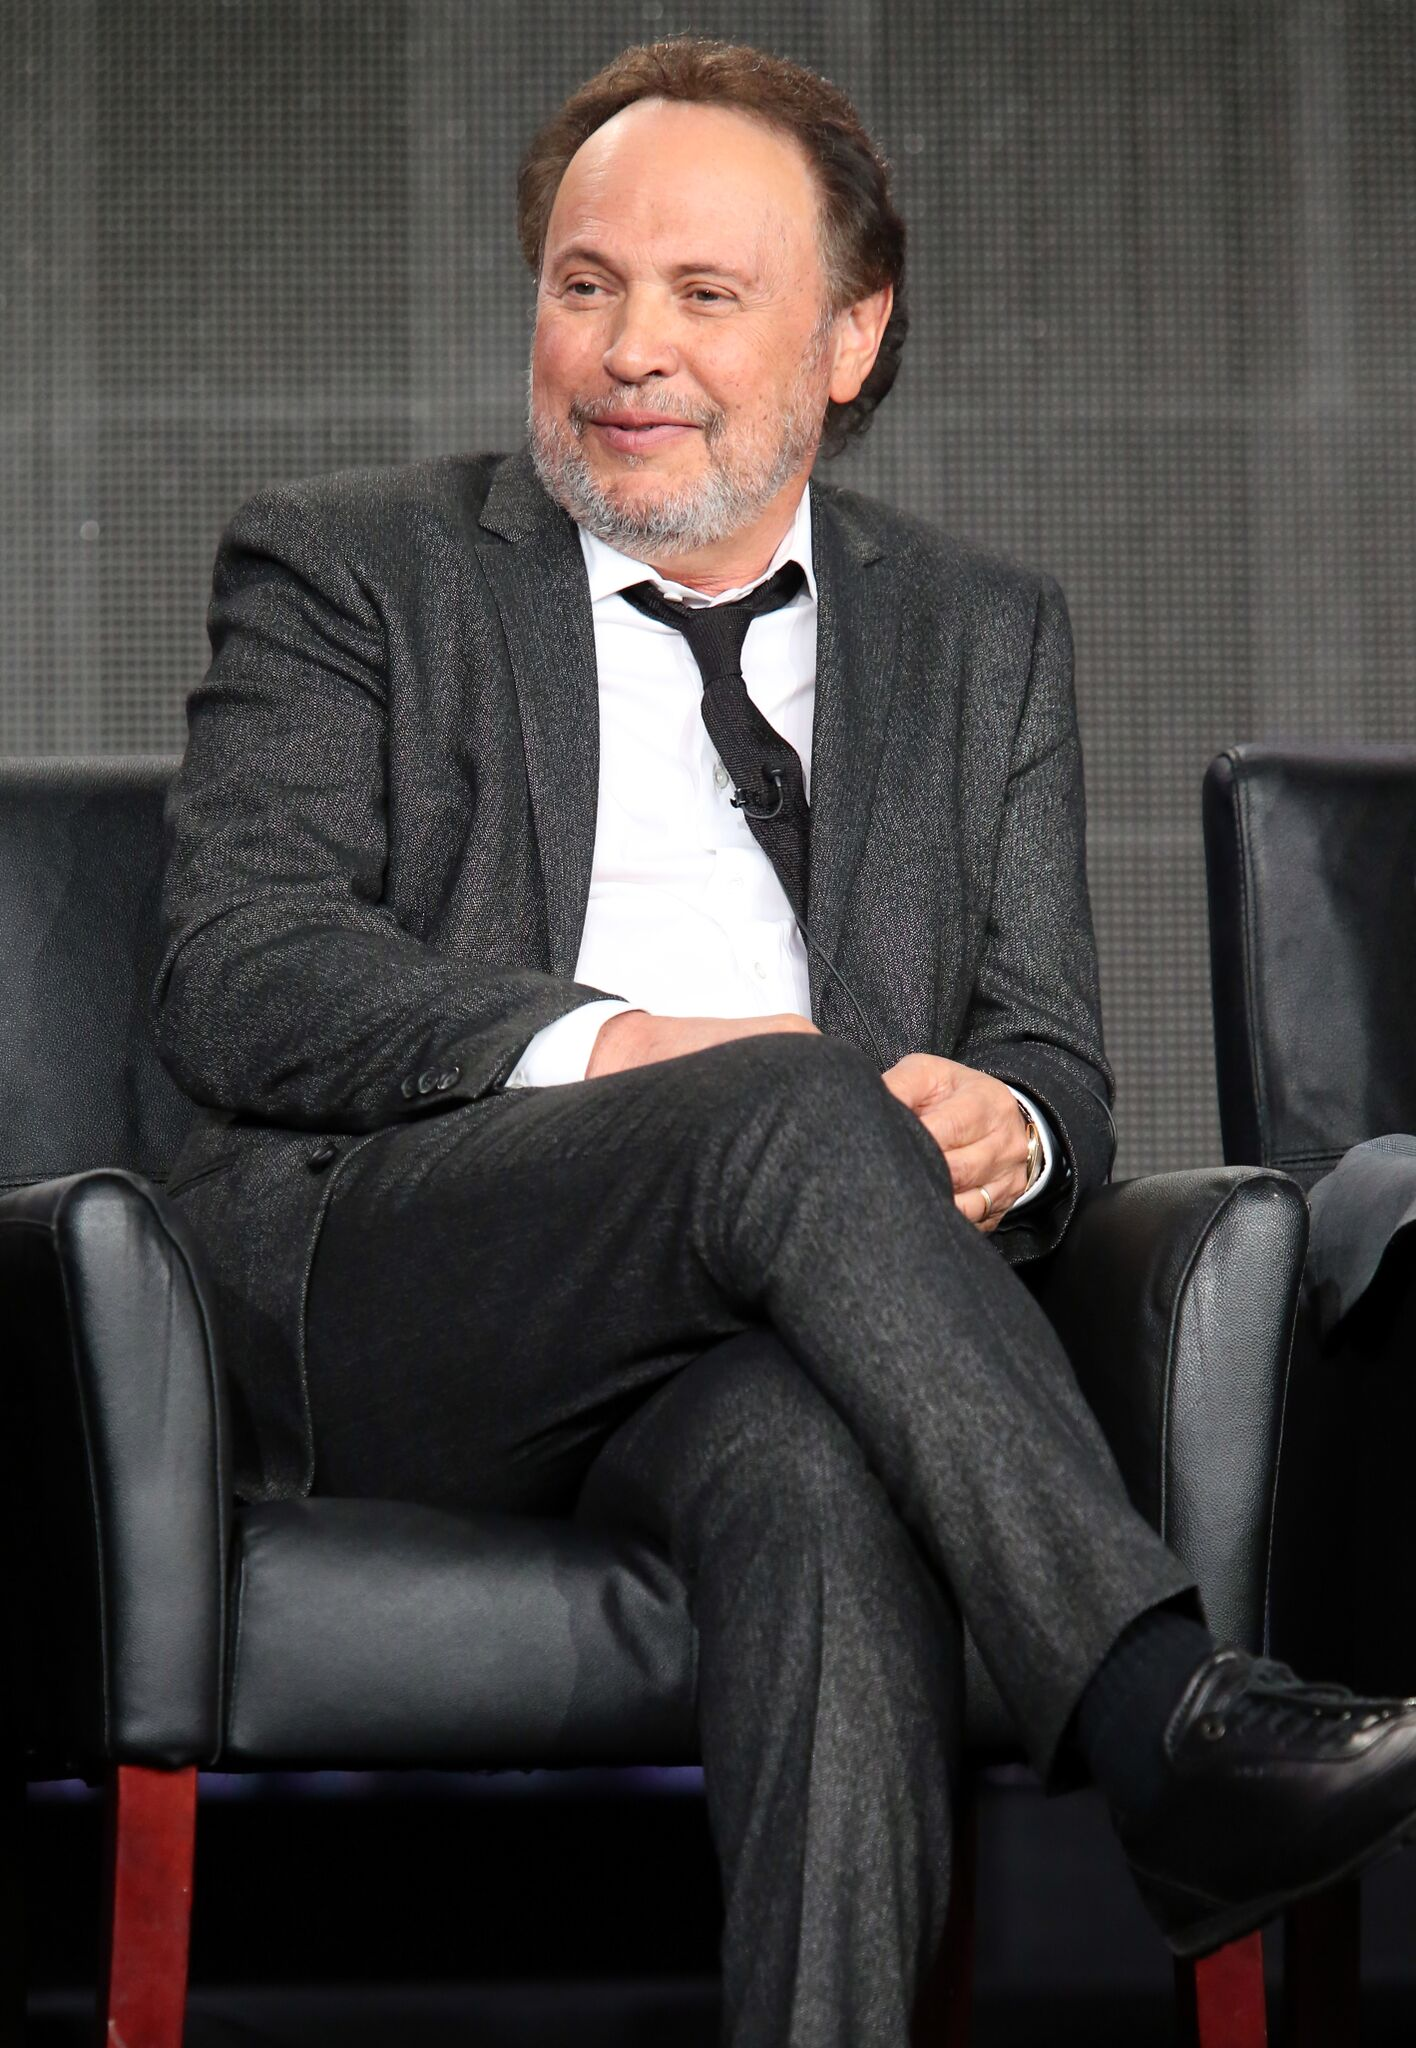 Executive producer/writer/actor Billy Crystal speaks onstage during the 'The Comedians' panel discussion at the FX Networks portion of the Television Critics Association press tour | Getty Images